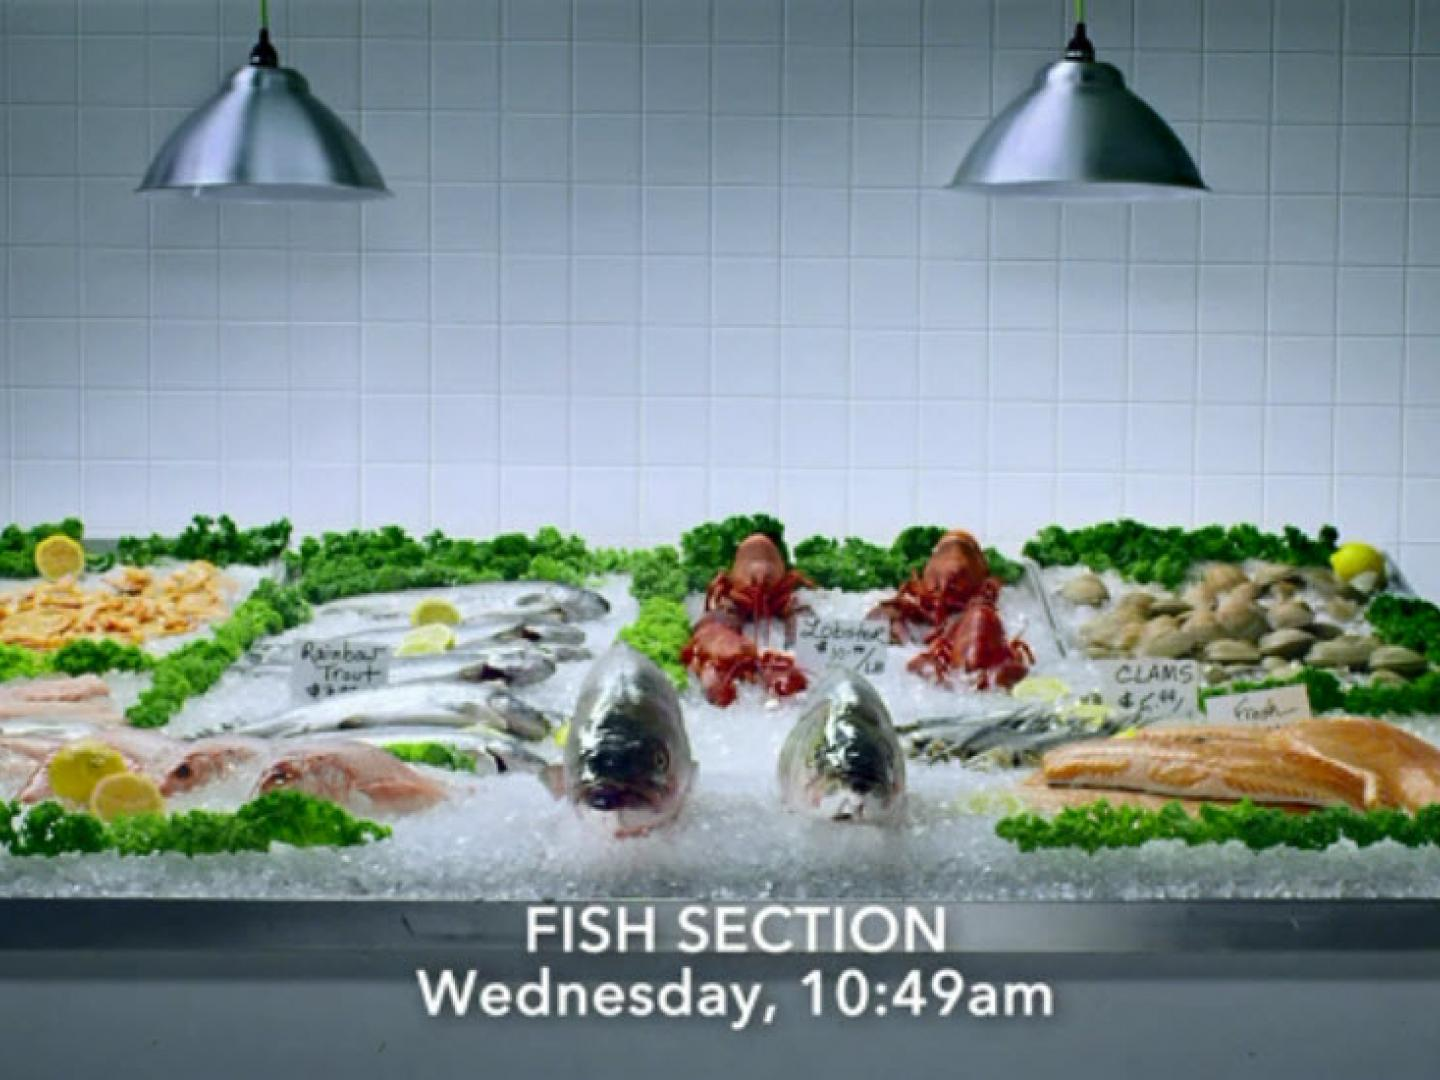 Take It From A Fish - Decision Thumbnail